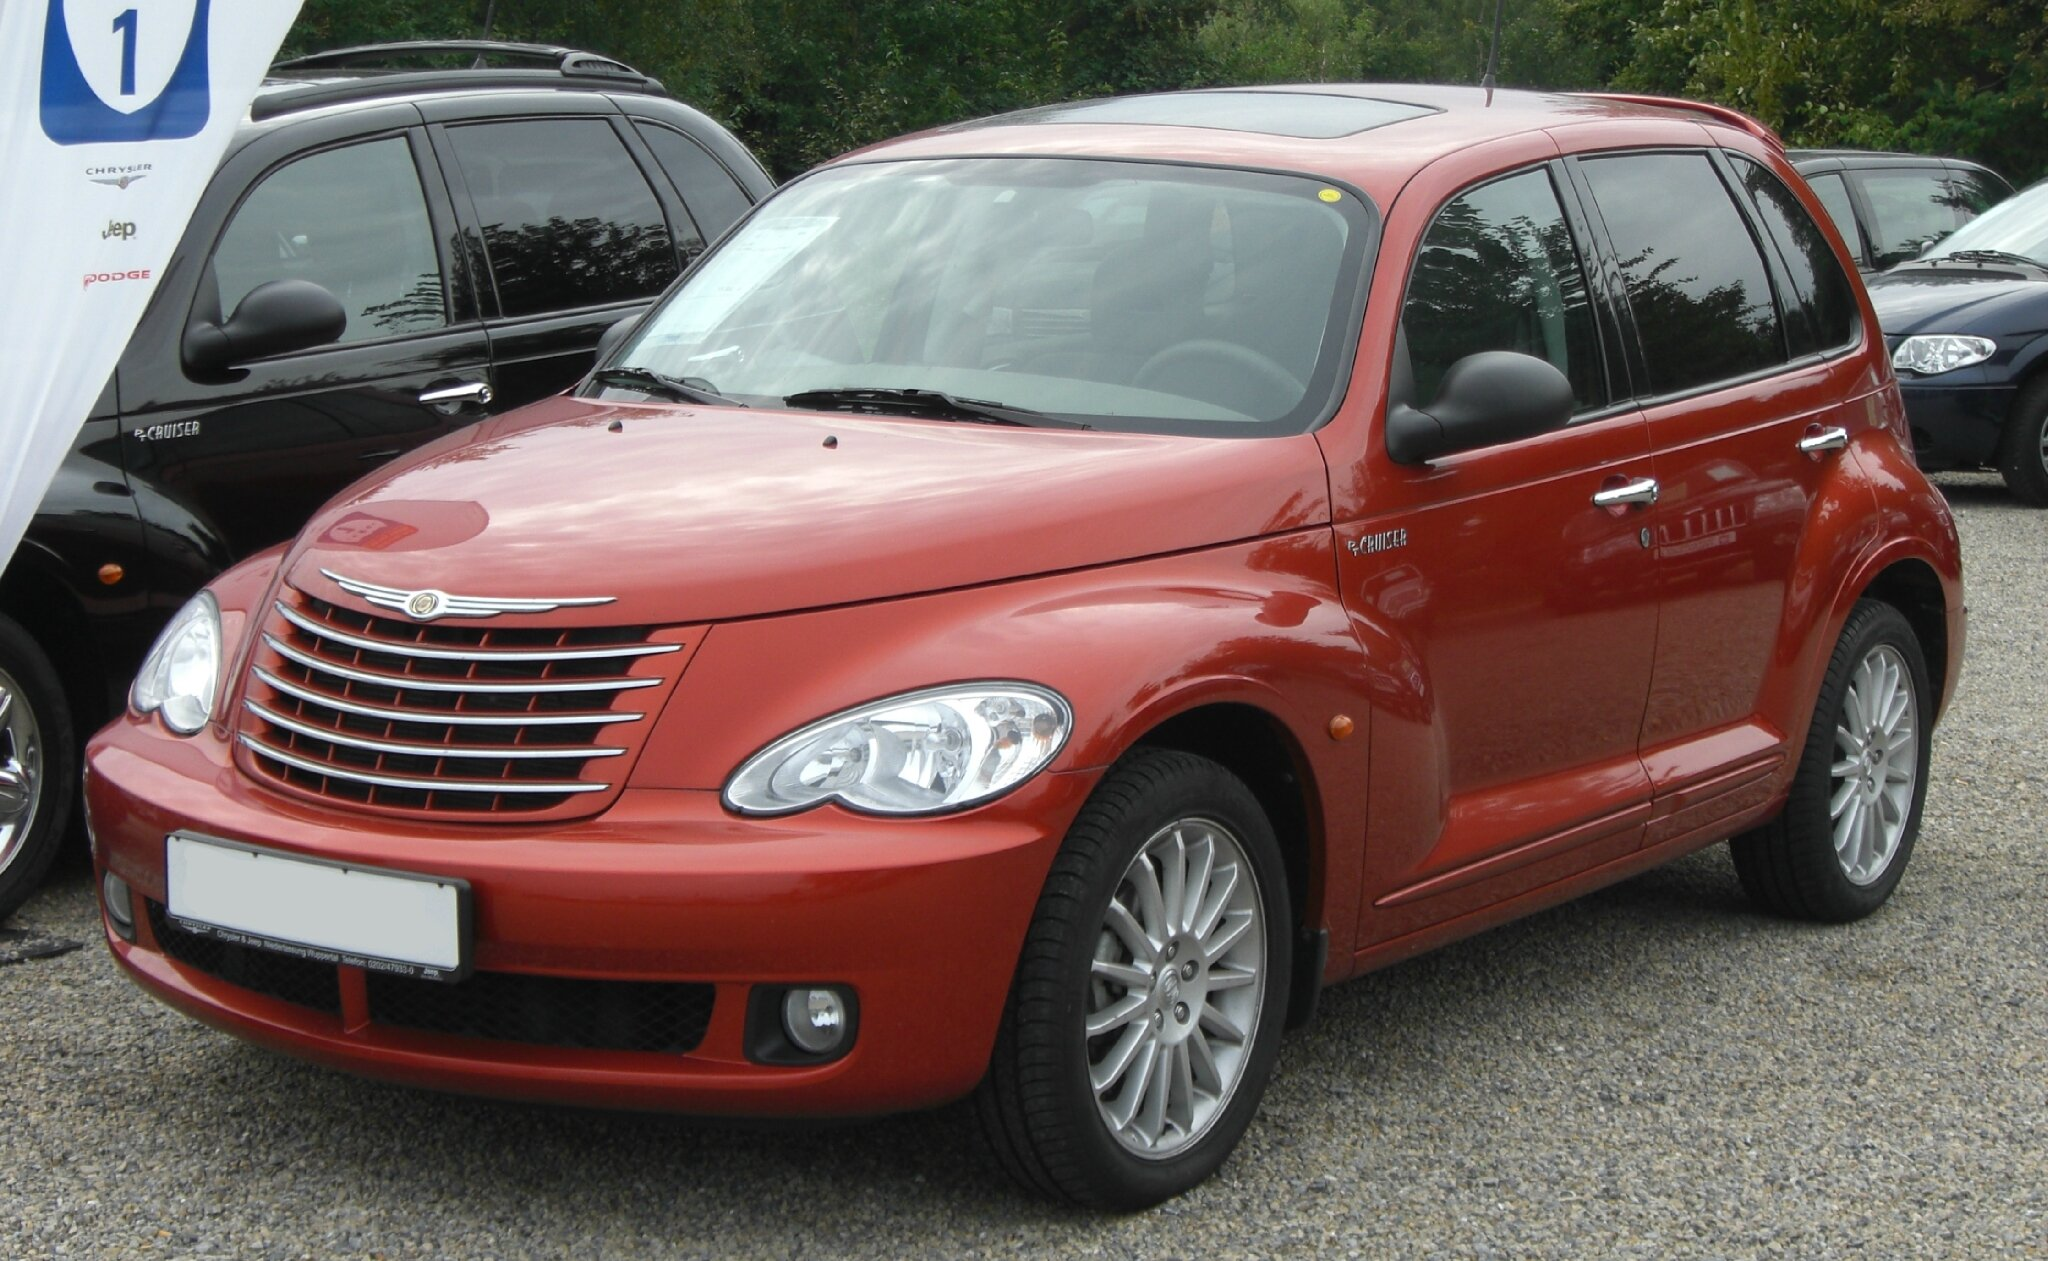 chrysler pt cruiser 2000 2012 zoom auto blog. Black Bedroom Furniture Sets. Home Design Ideas